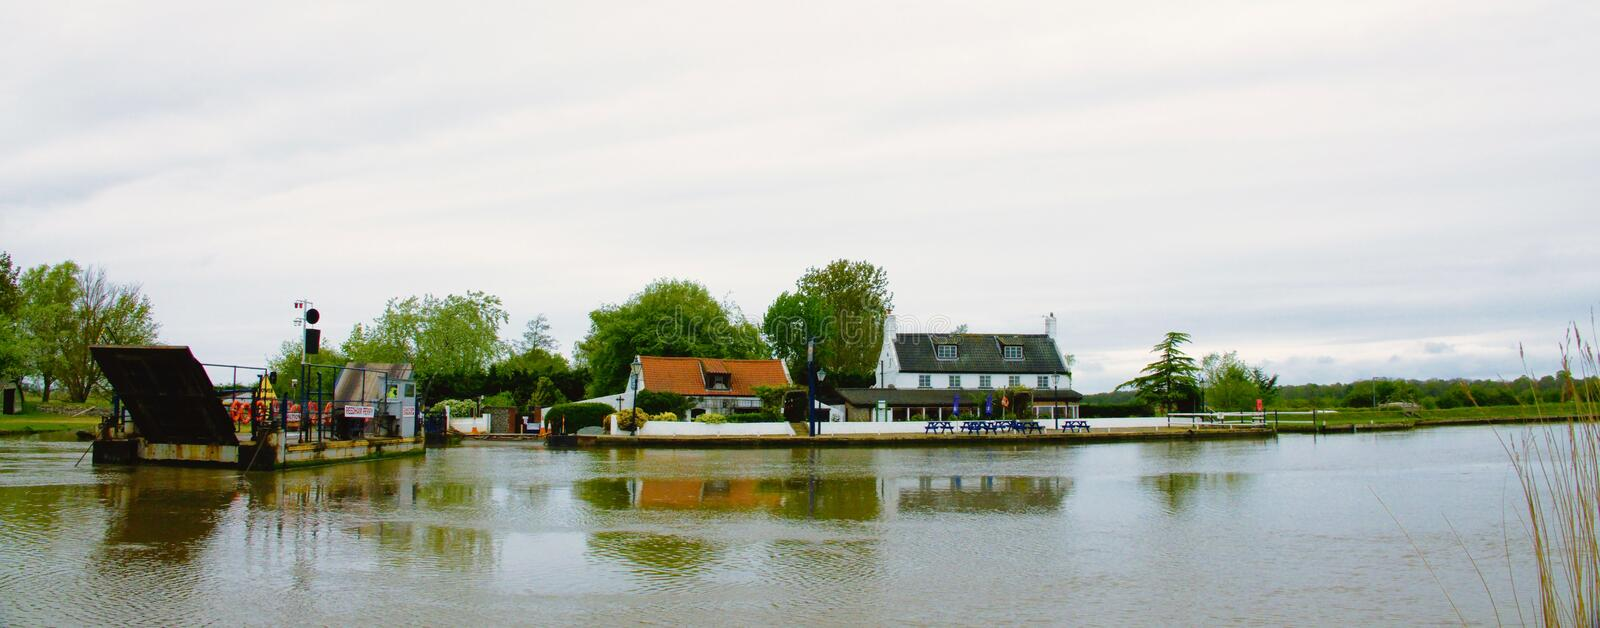 Ferry and Ferry Inn Reedham Norfolk. The Ferry and Ferry Inn on the banks of the river Yare near Reedham Norfolk UK royalty free stock photo